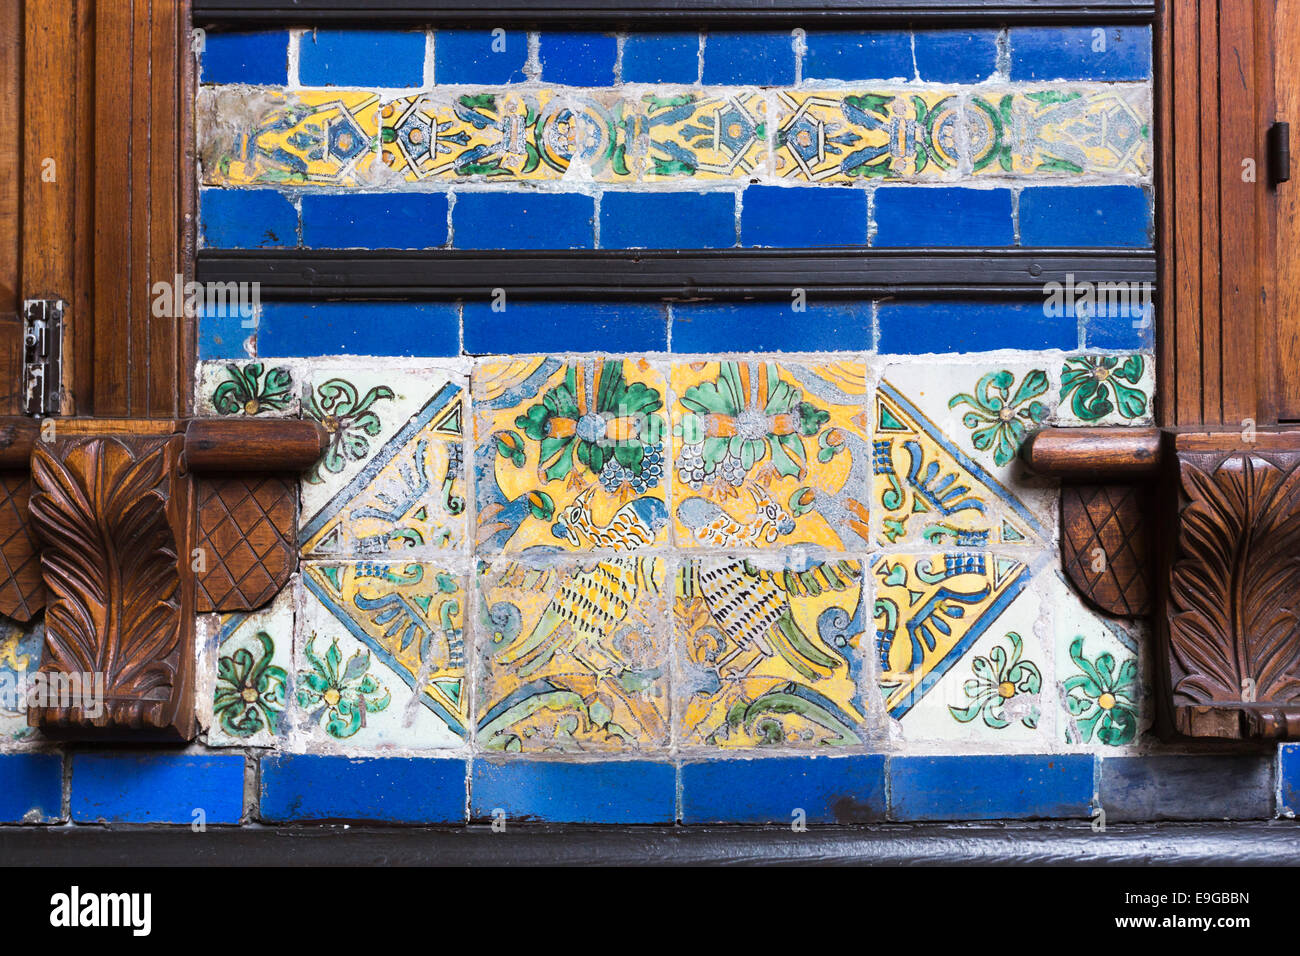 Great 1 Inch Hexagon Floor Tiles Thick 12X12 Floor Tiles Rectangular 12X24 Ceramic Tile Patterns 2 X 12 Ceramic Tile Old 2X6 Subway Tile Red3D Ceiling Tiles Colourful Blue And Yellow Antique Ceramic Tiles At The Historic ..